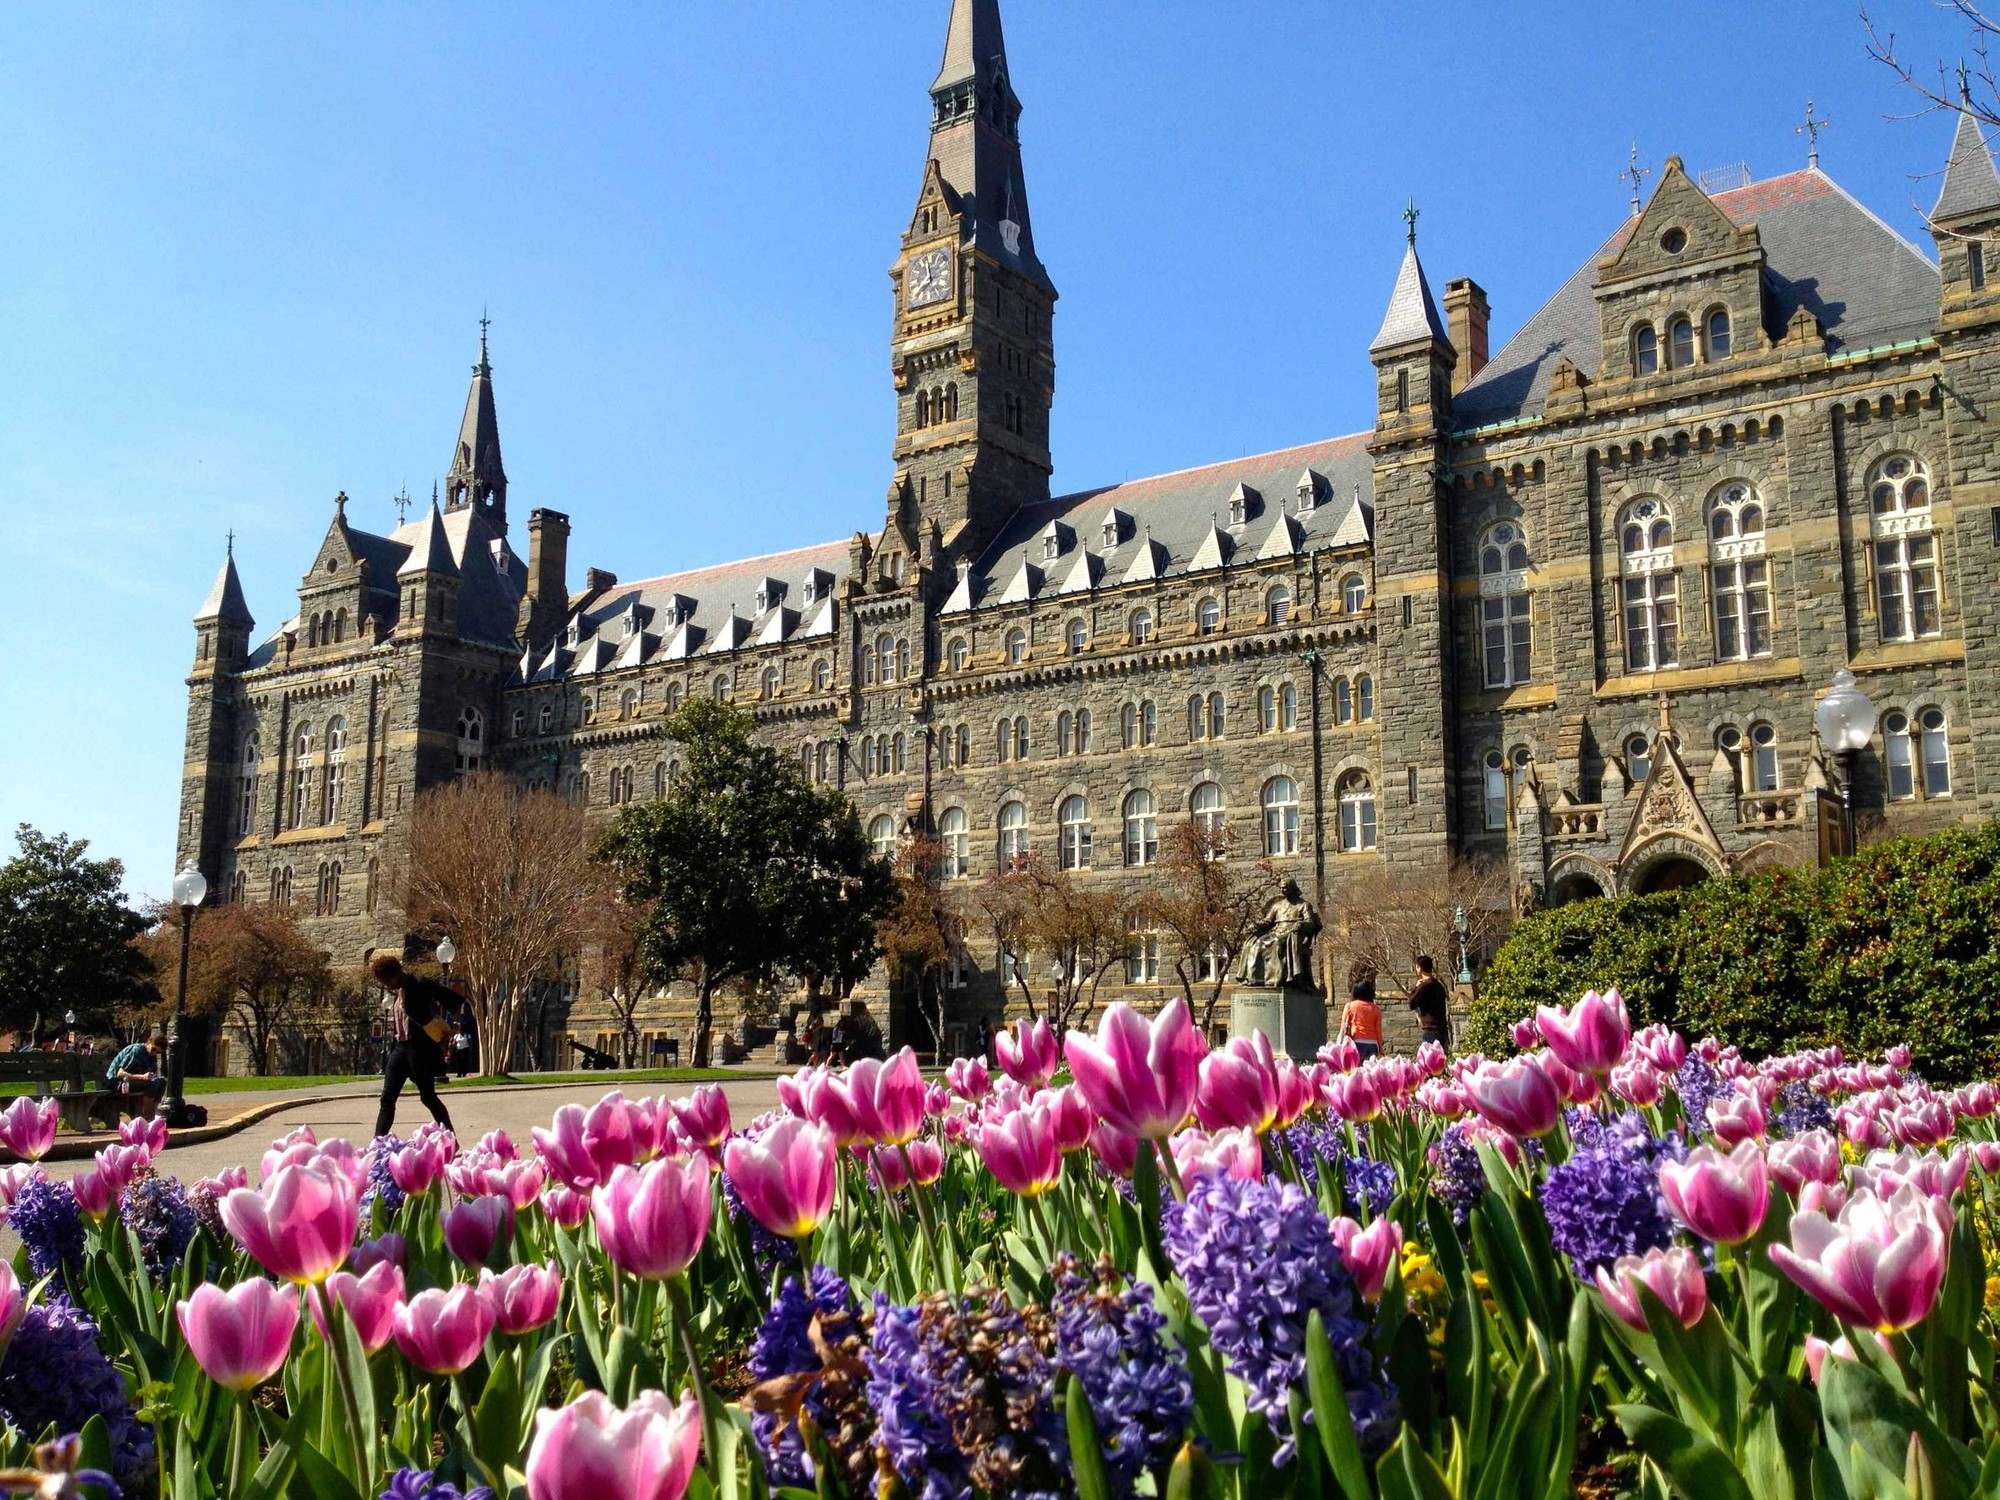 The clocktower rises above Healy Hall with pink flowers in the foreground